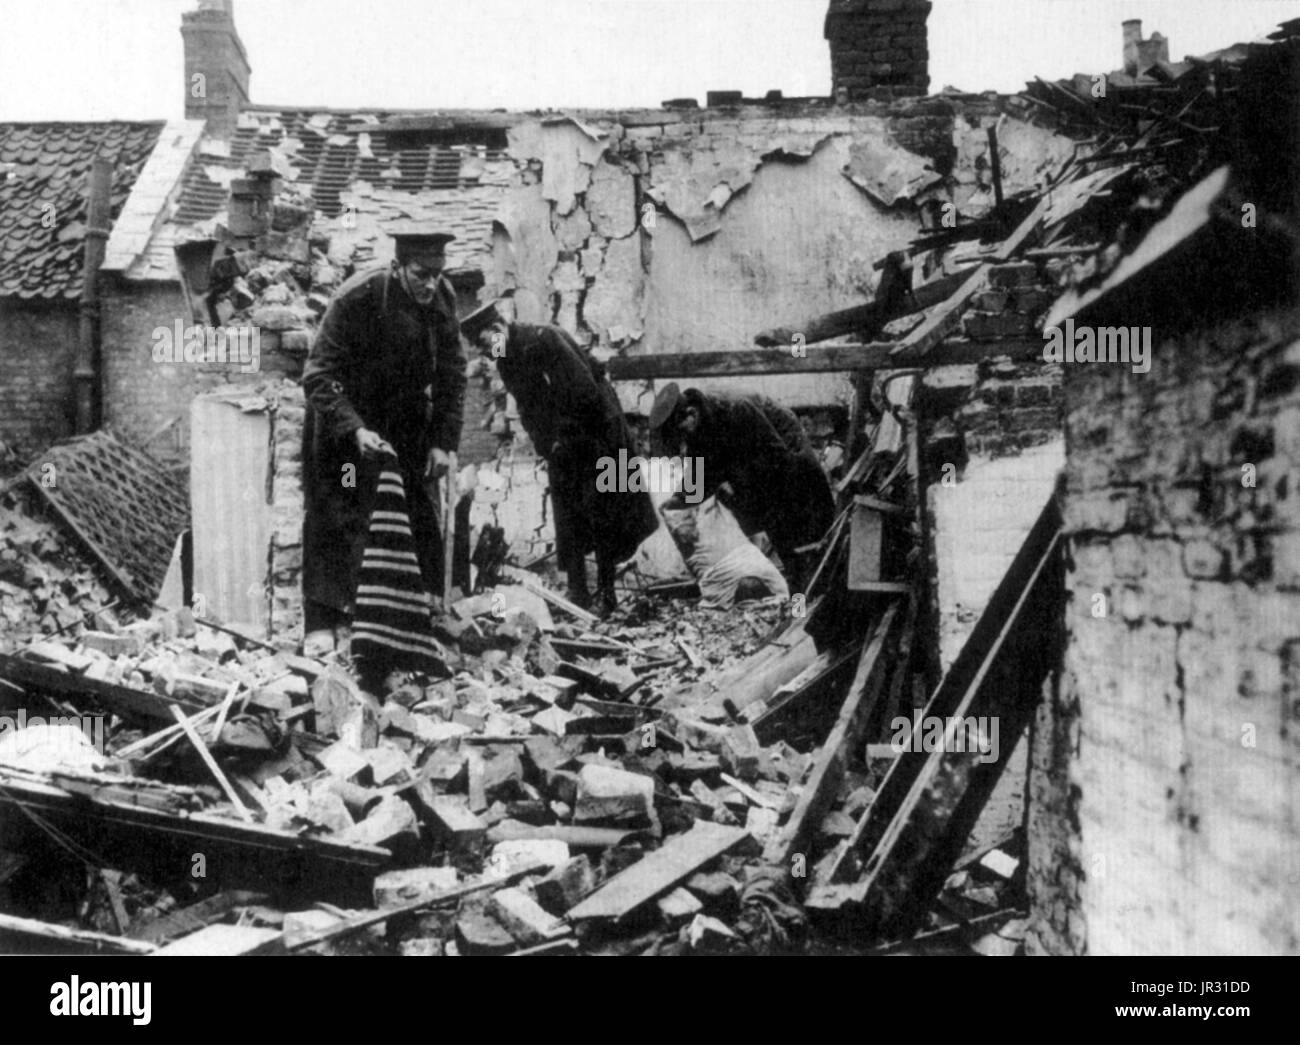 Zeppelin damage in Yarmouth. During WWI Great Yarmouth suffered the first aerial bombardment in the UK, by Zeppelin L3 on January 19, 1915. Bombing missions, especially those targeting London, captured the German public's imagination, but had little significant material success, although the Zeppelin raids, together with the later bombing raids carried out by aeroplanes, did cause the diversion of men and equipment from the Western Front and fear of the raids had some effect on industrial production. - Stock Image